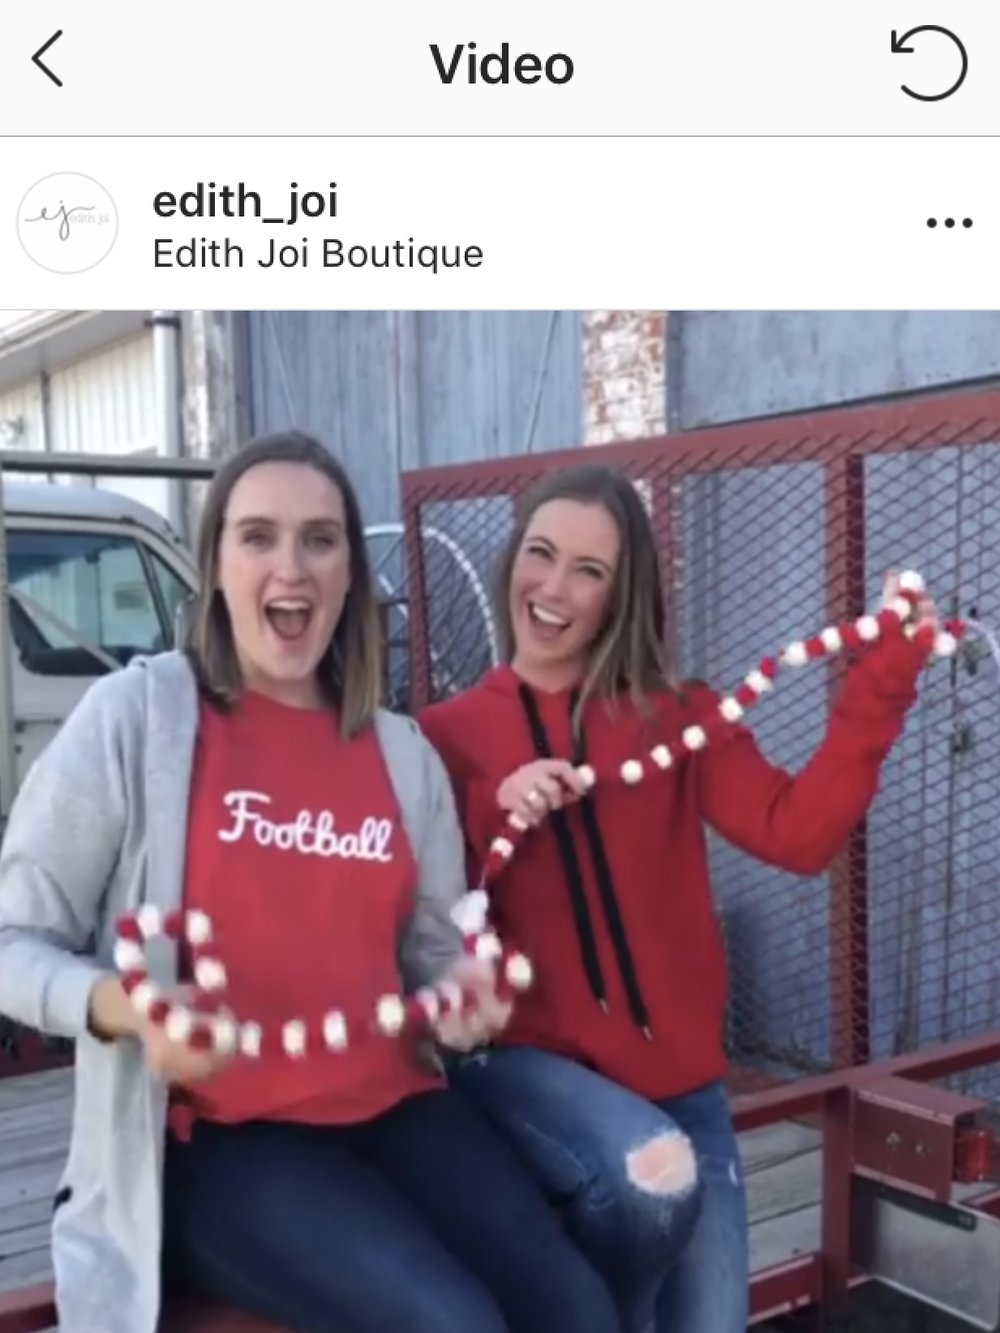 Head over to the  Edith Joi insta page  for this boomerang in all its cuteness